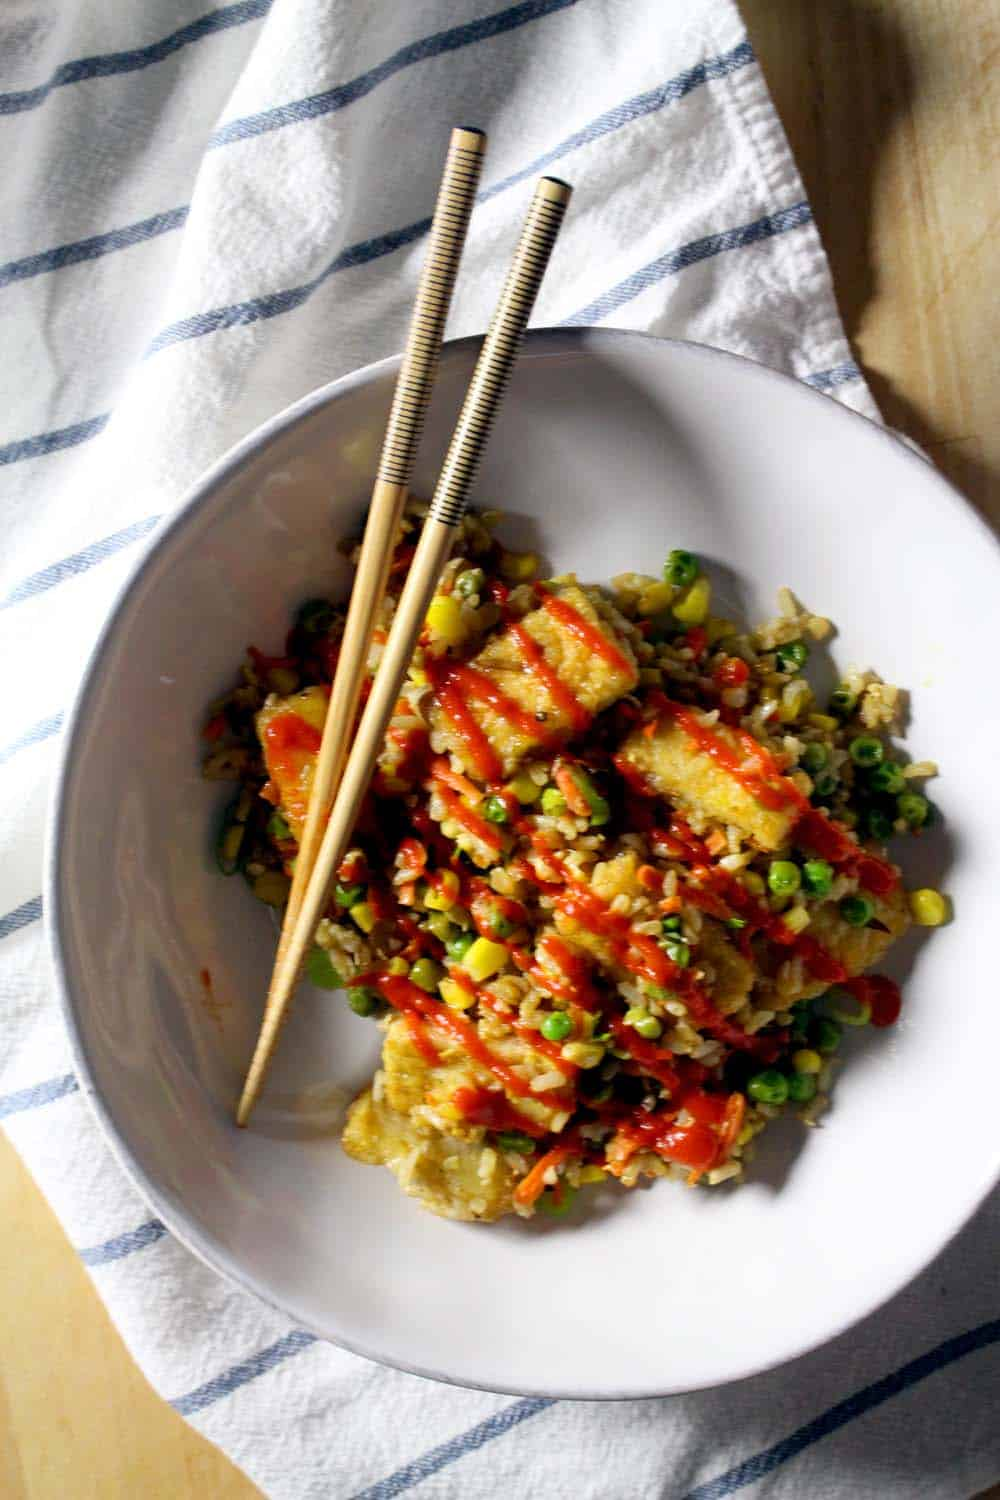 This fried rice recipe is packed with flavor, and includes how to make the tastiest, crispiest fried tofu you have ever had. Topped with scallions and basil for a super fresh taste, you'll never want take-out again!